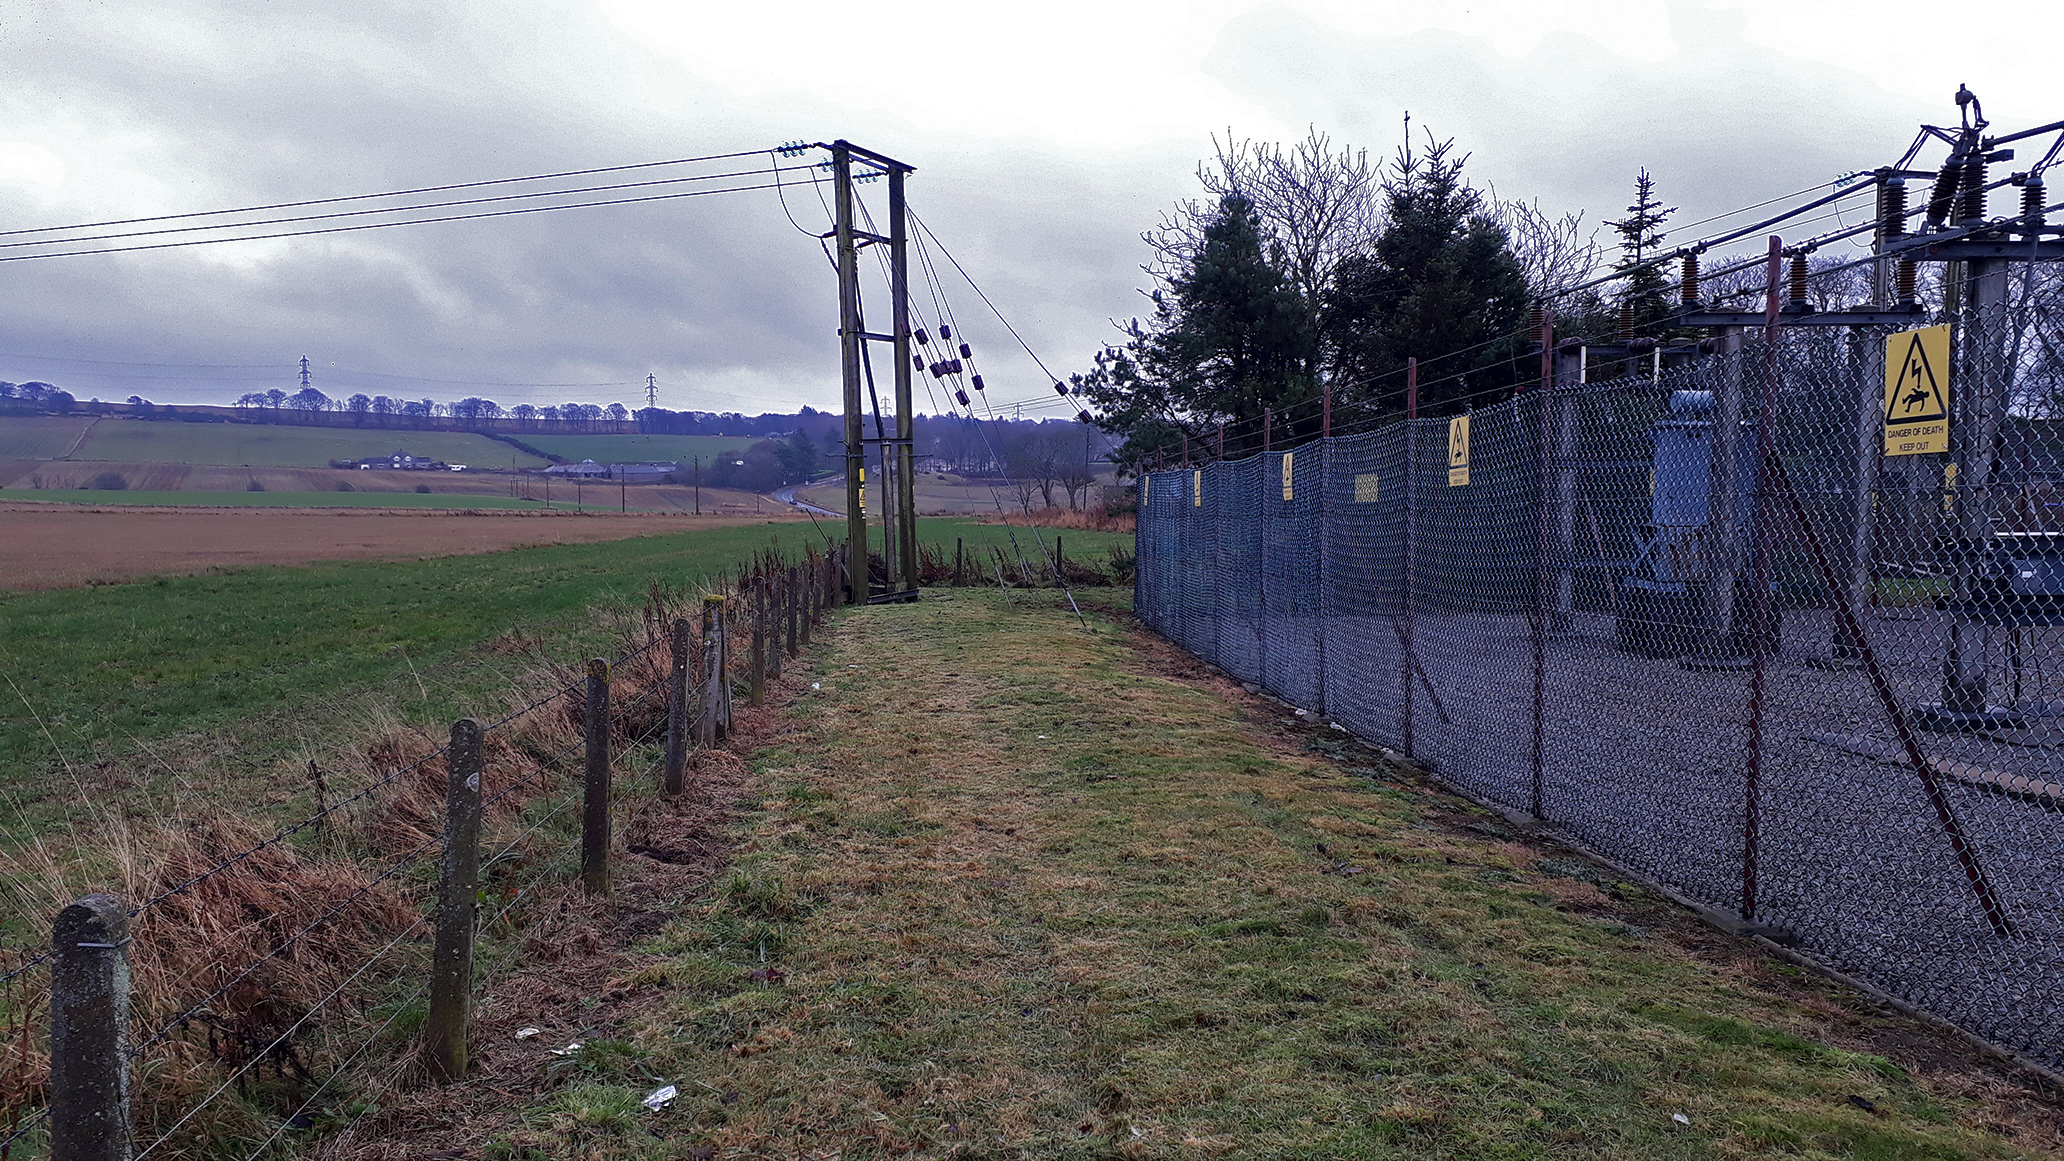 The improvement works between Dyce and Kingseat